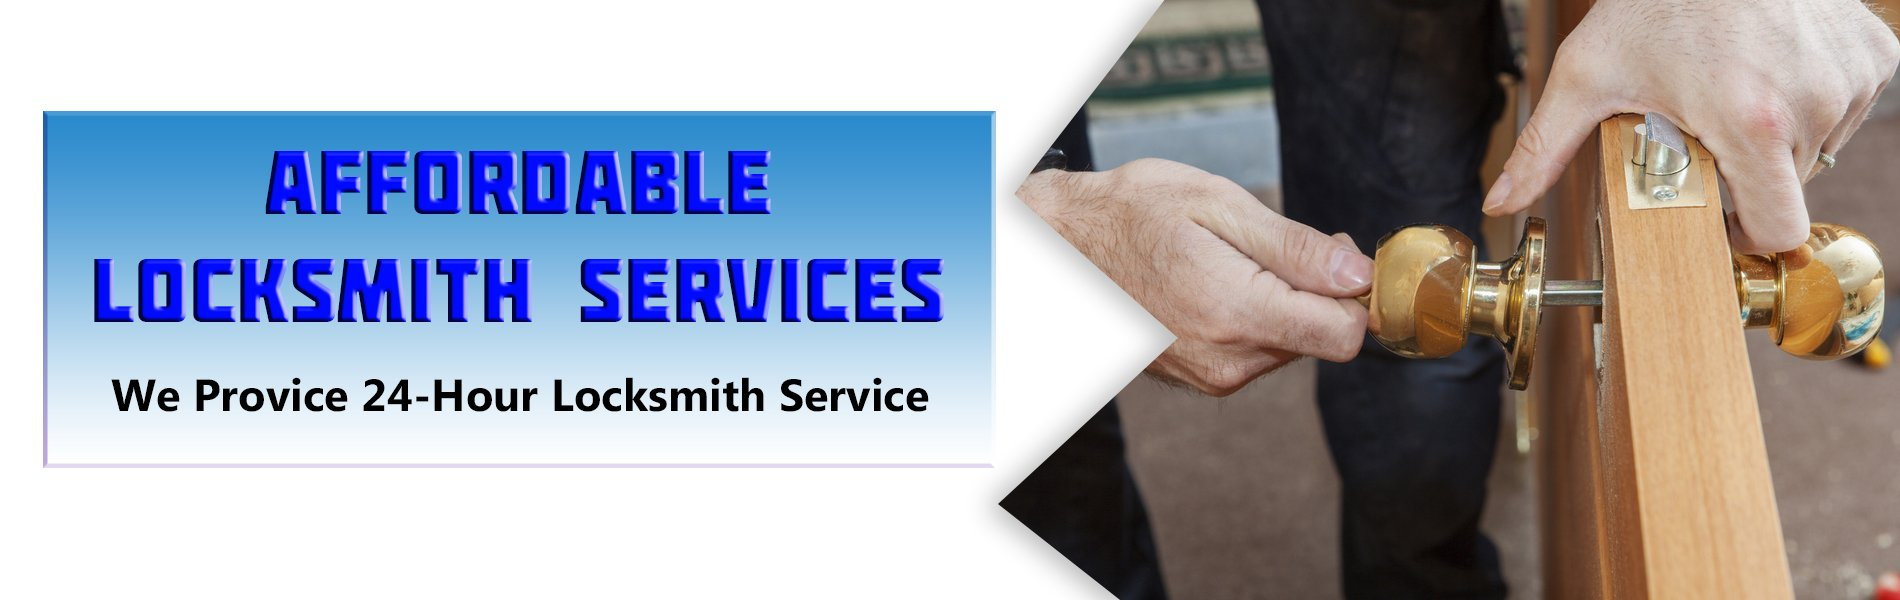 Littleton Locksmith Service, Littleton, CO 303-357-7643